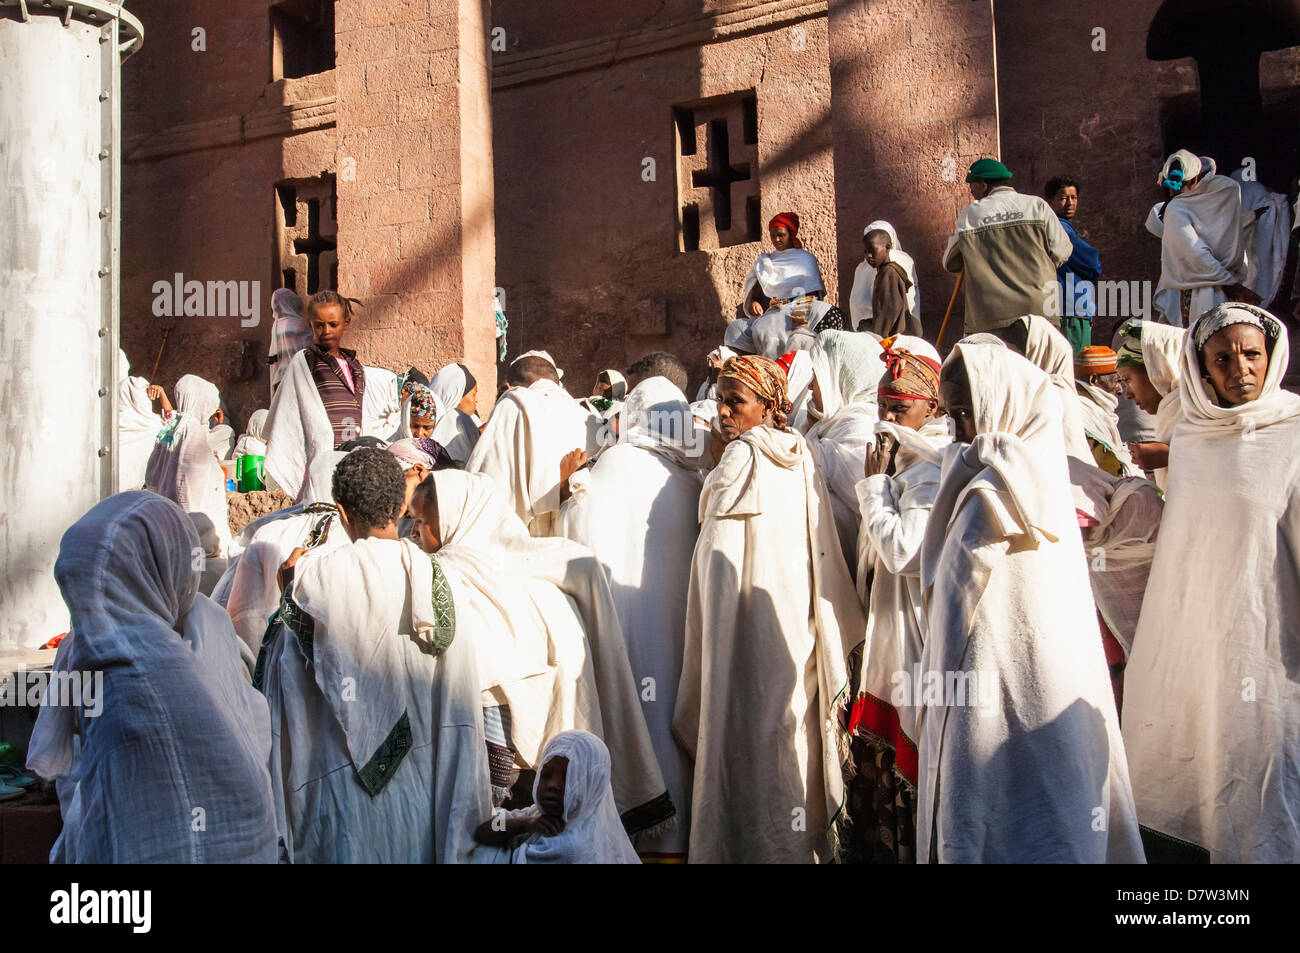 Pilgrims with the traditional white shawl attending a ceremony at the Bete Medhane Alem Church, Lalibela, Amhara, - Stock Image